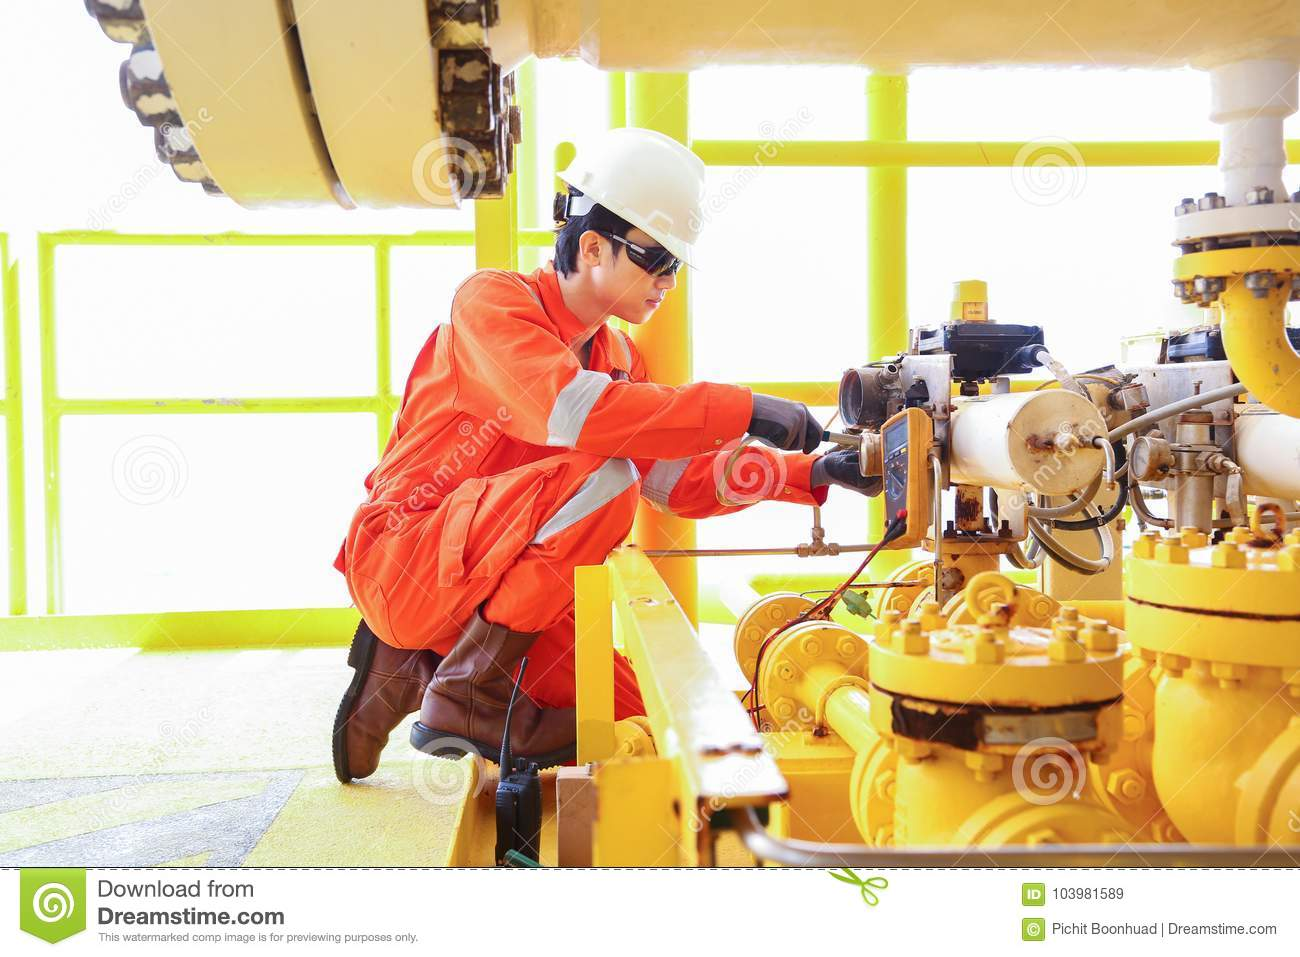 Electrical and Instrument technician is replacing solenoid valve of shut down valve at oil and gas wellhead remote platform